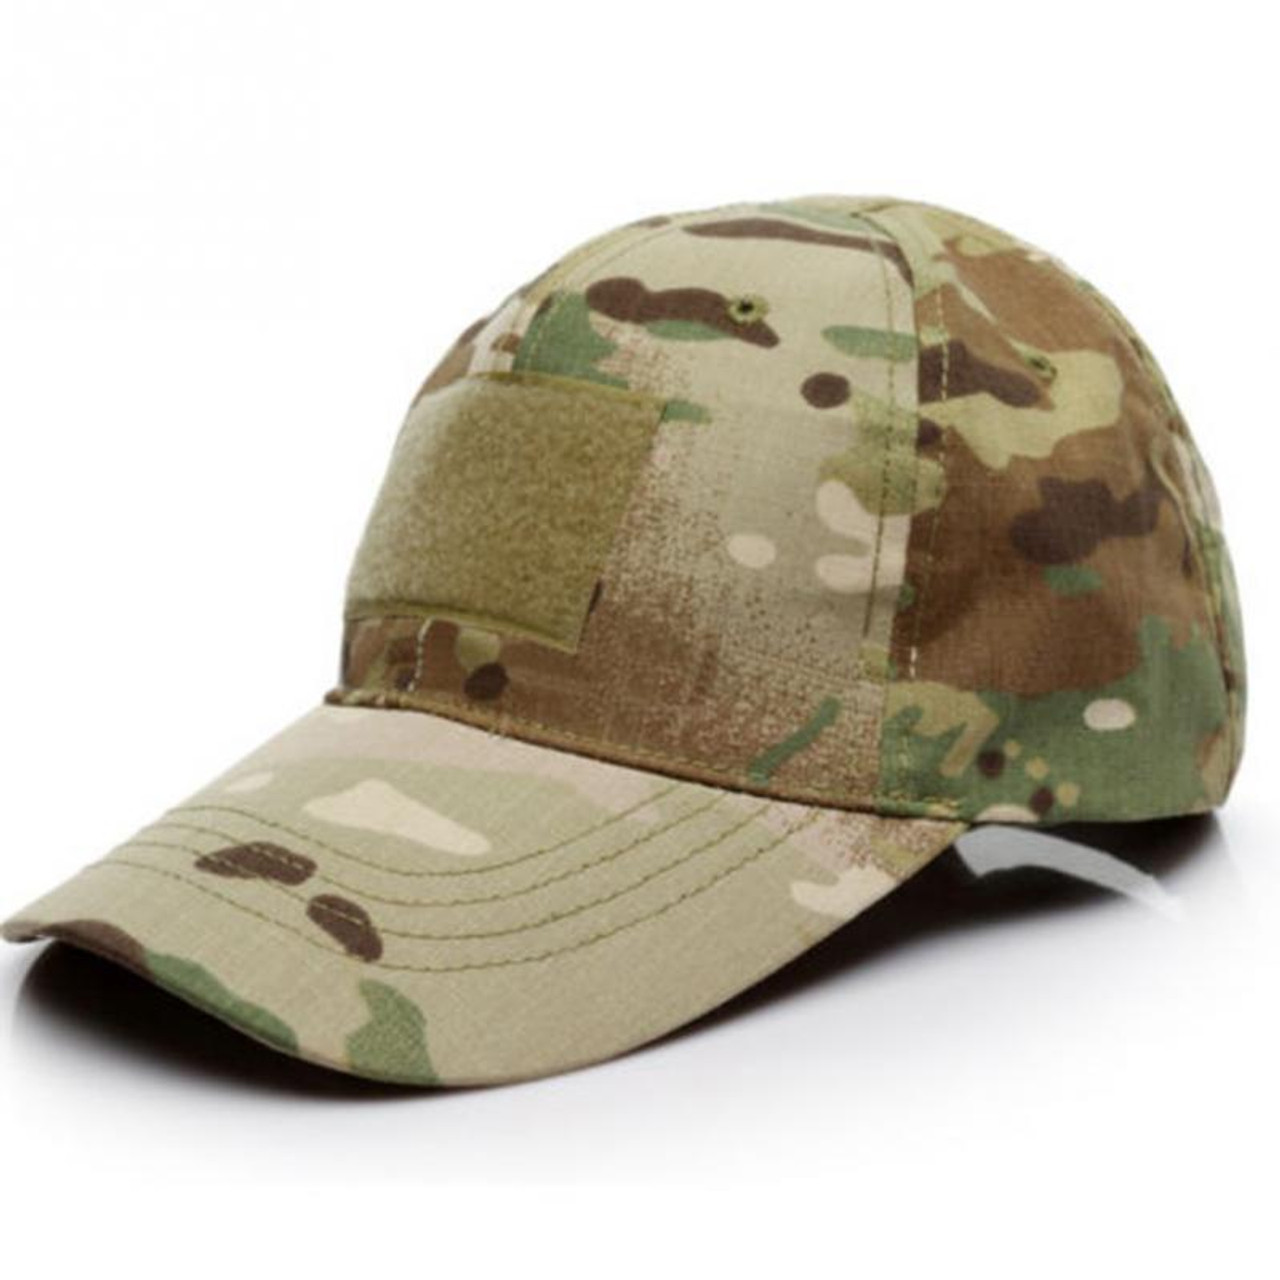 ba0dbcc2303 ... 6 Patterns for Choice Snapback Camouflage Tactical Hat Patch Army  Tactical Baseball Cap Unisex ACU CP ...